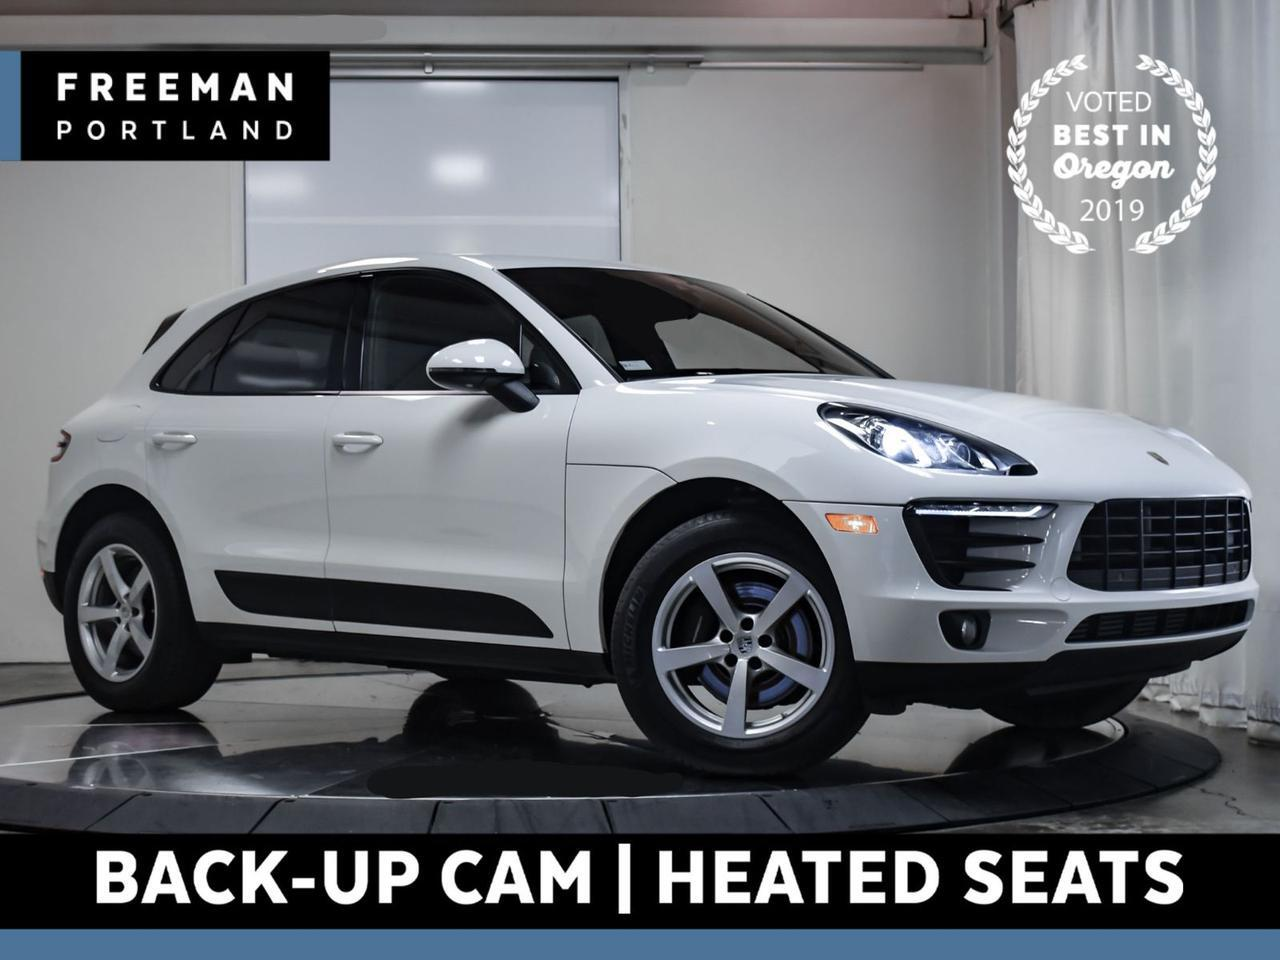 2017 Porsche Macan AWD Heated Seats Back-Up Cam Nav Blind Spot Asst